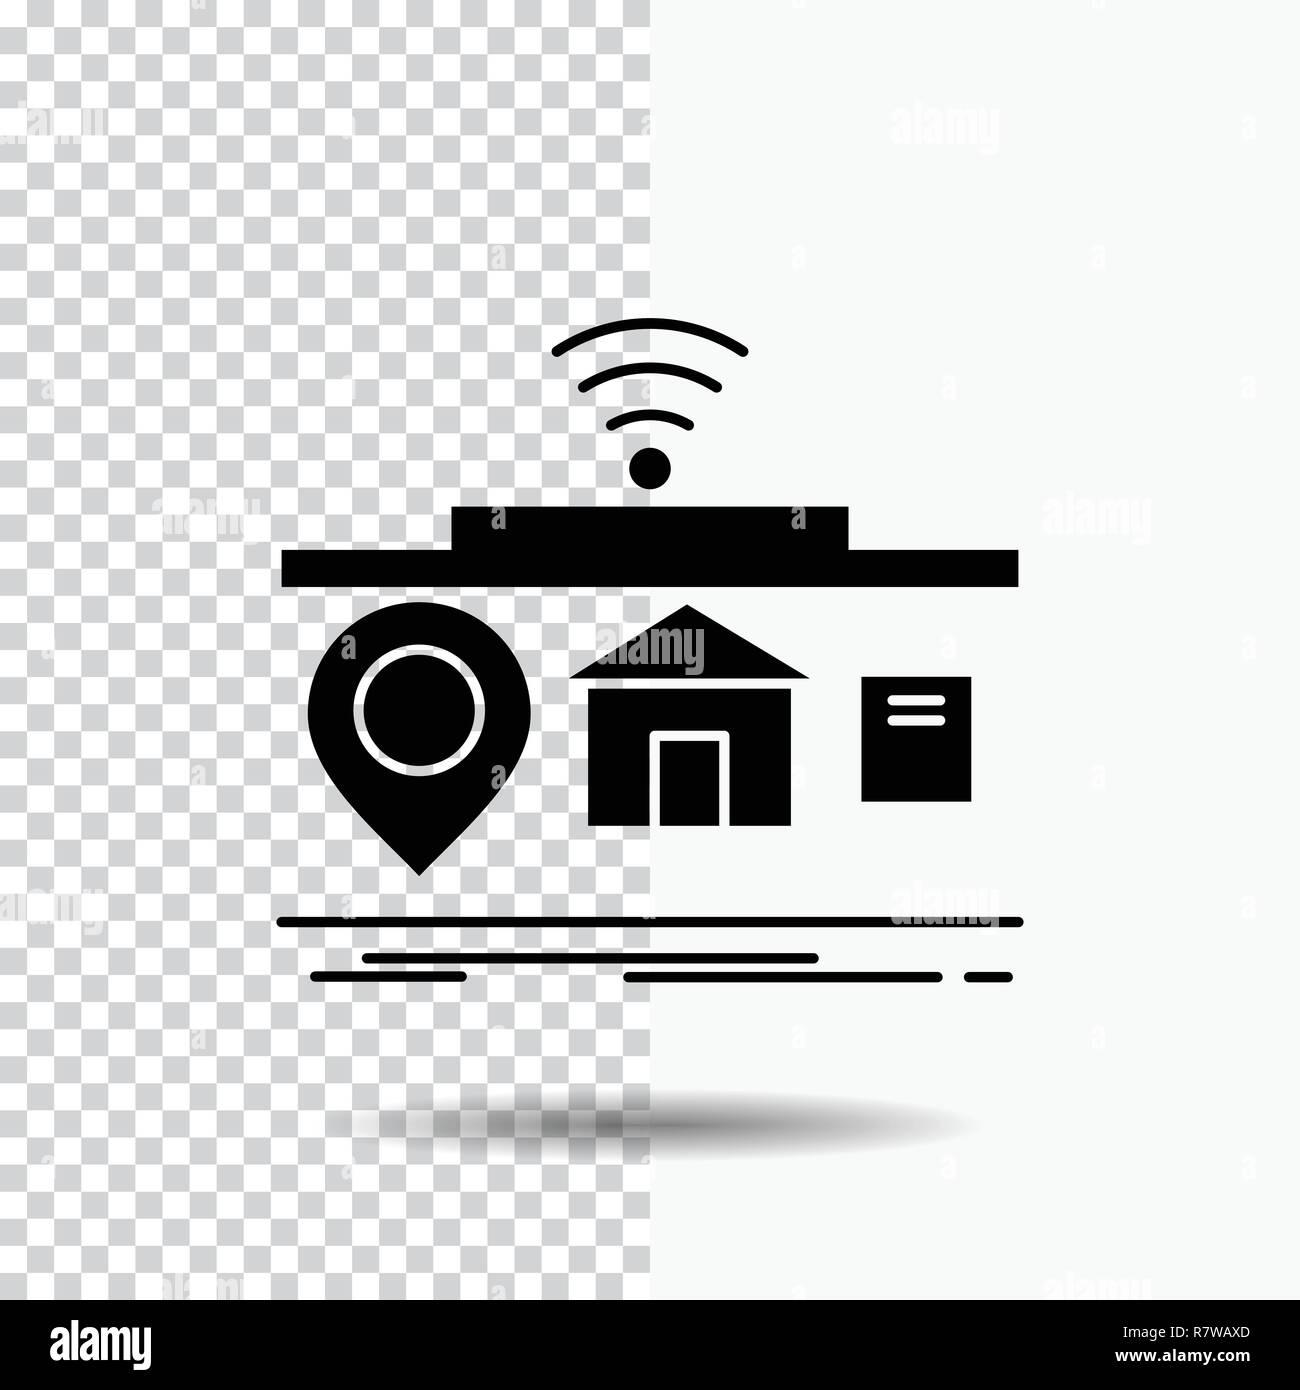 Iot Gadgets Internet Of Things Glyph Icon On Transparent Background Black Icon Stock Vector Image Art Alamy